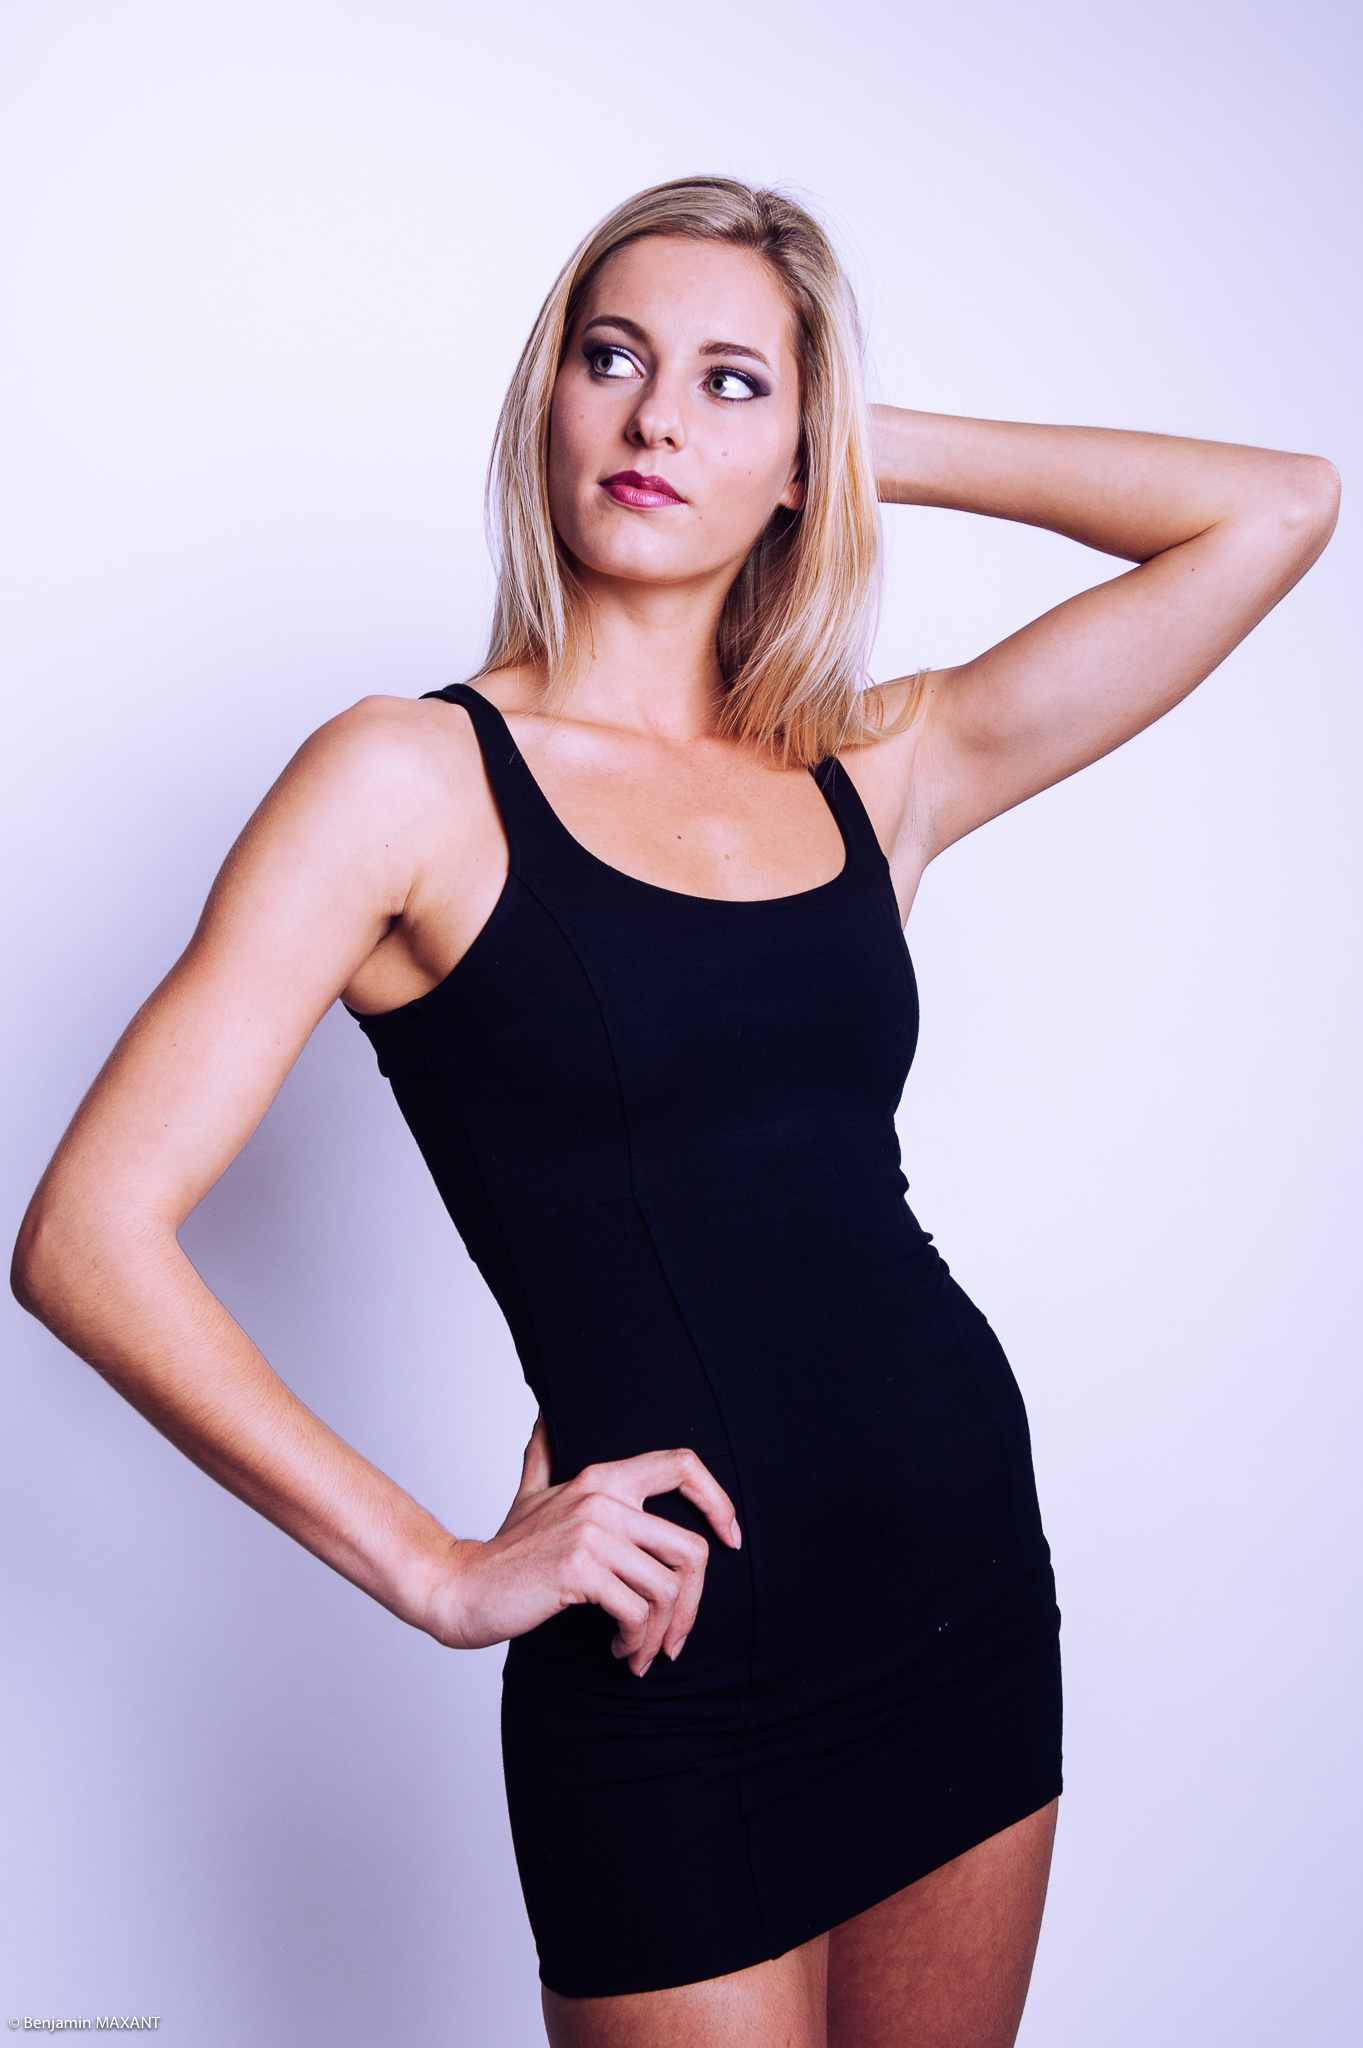 Casual photo shoot in studio sexy black blonde model dress